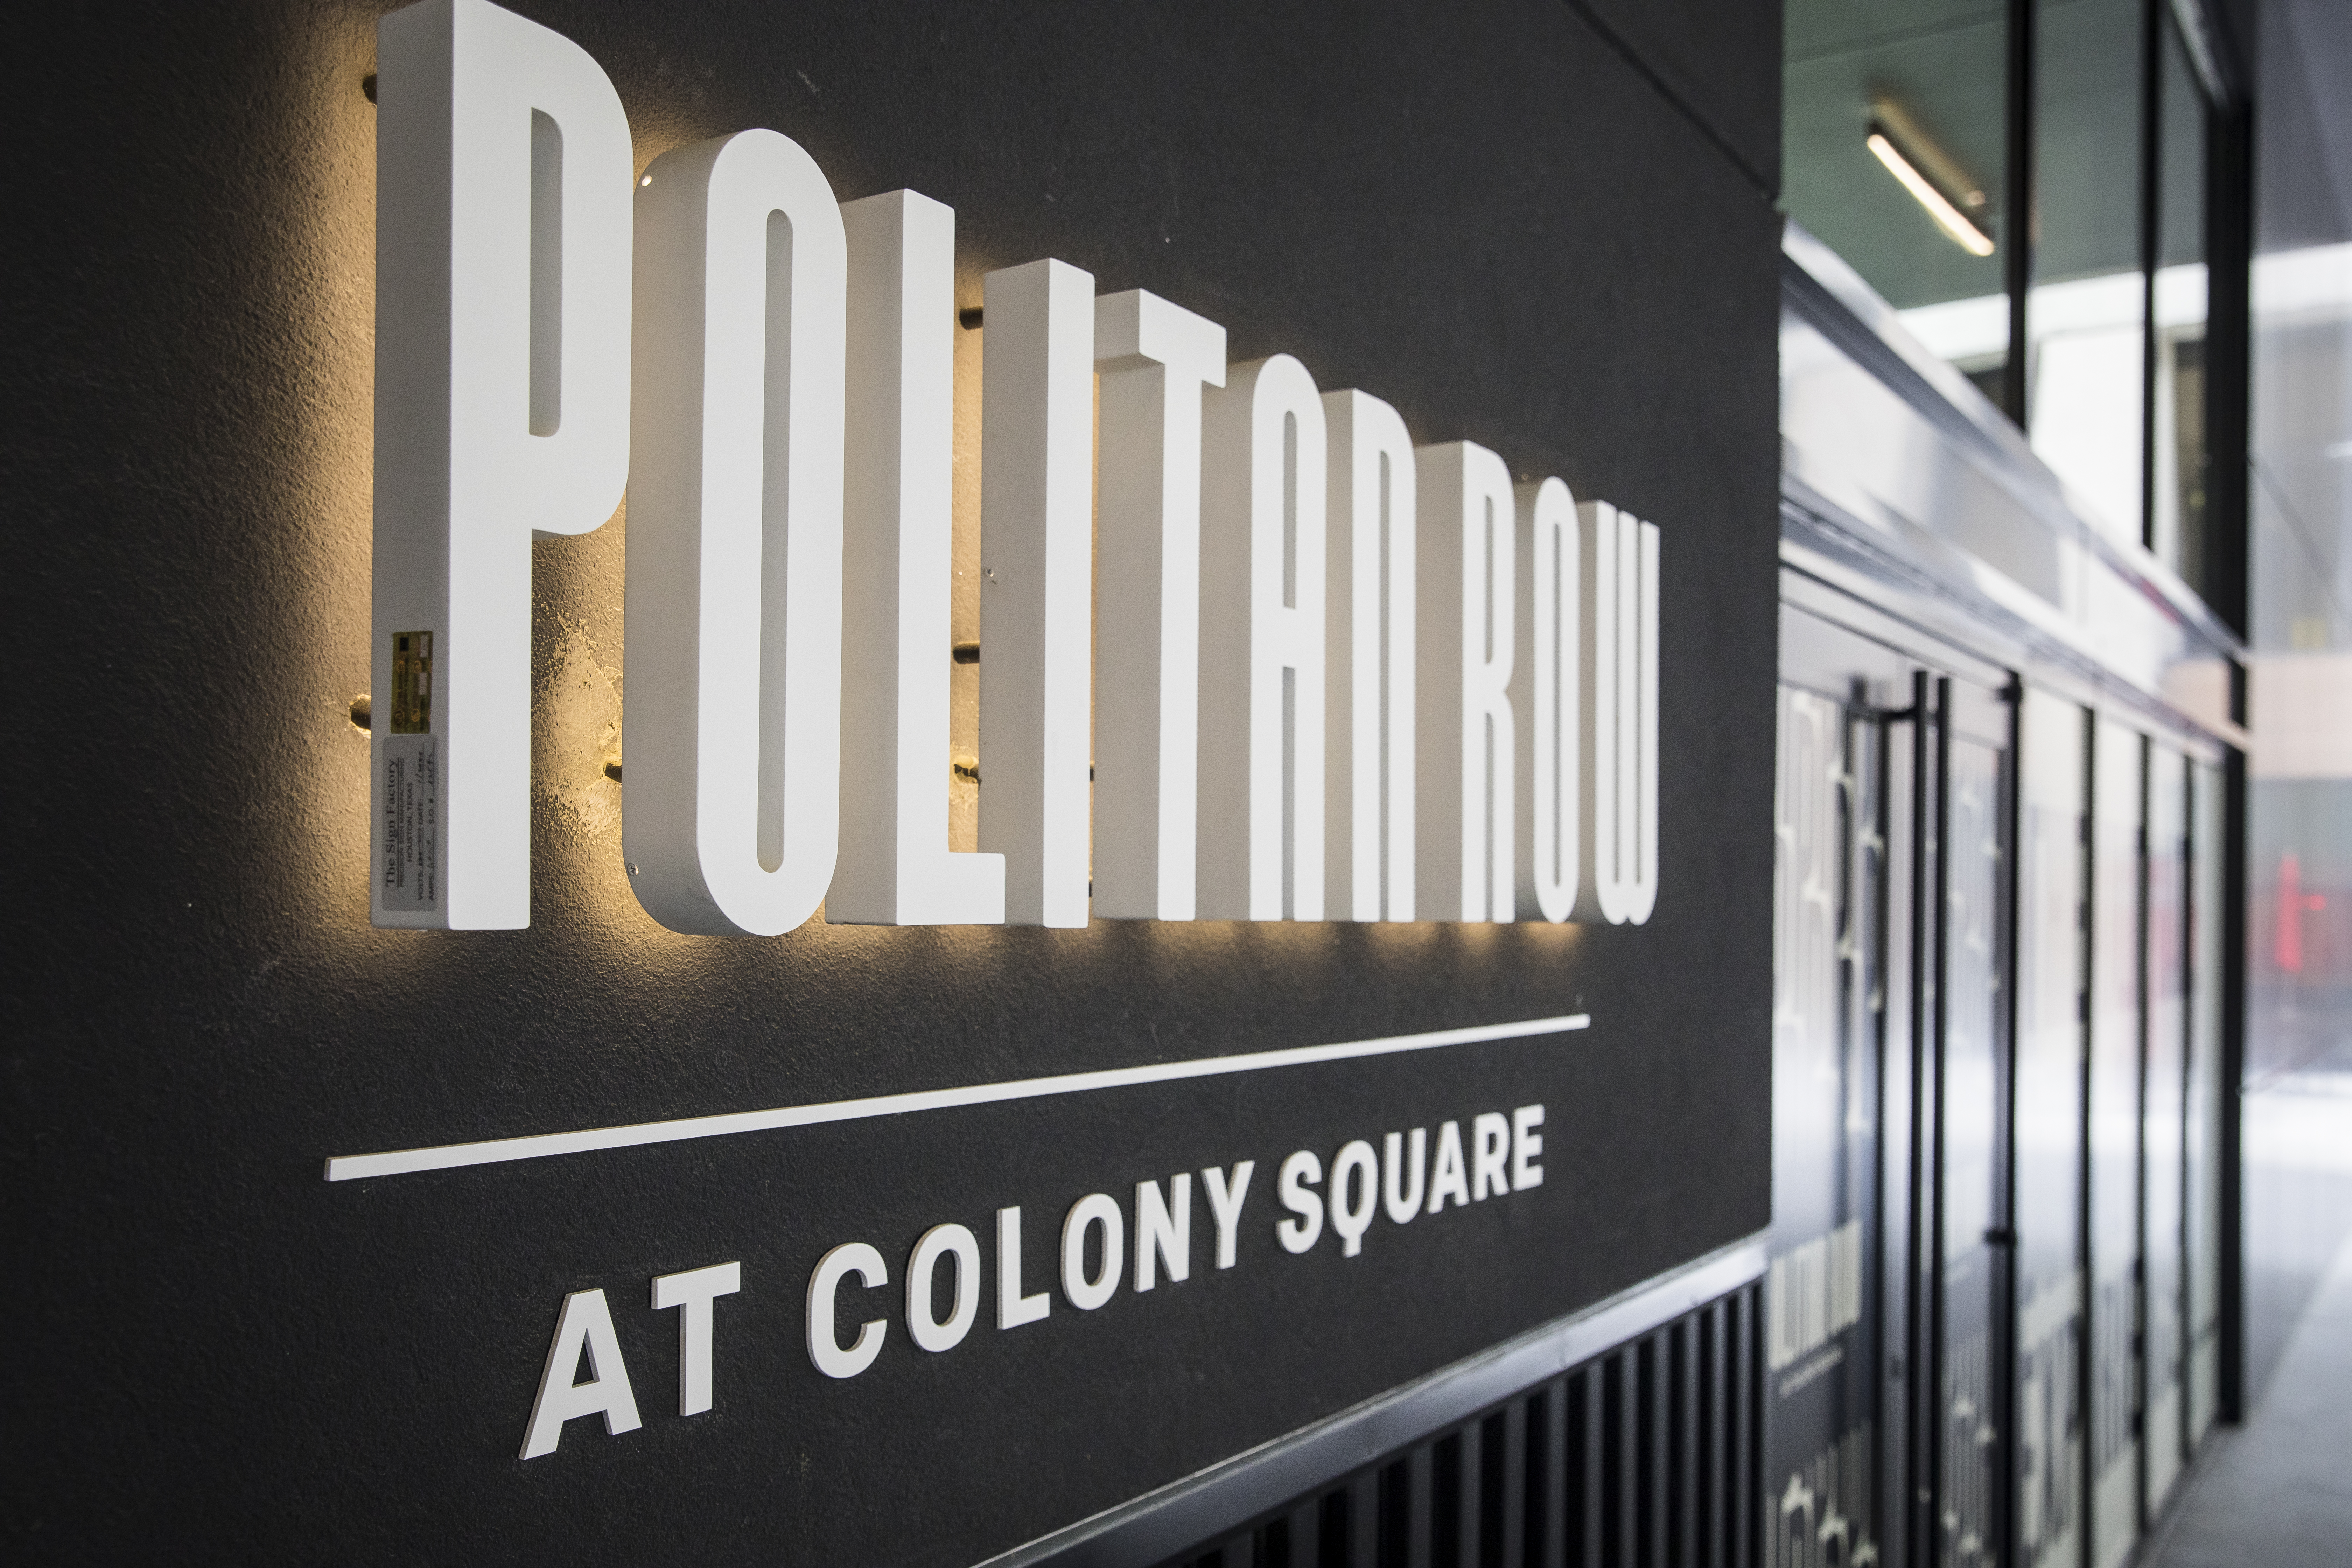 """The lit up white, raised-lettered sign reading """"Politan Row at Colony Square"""" set against a shiny black background in Atlanta"""